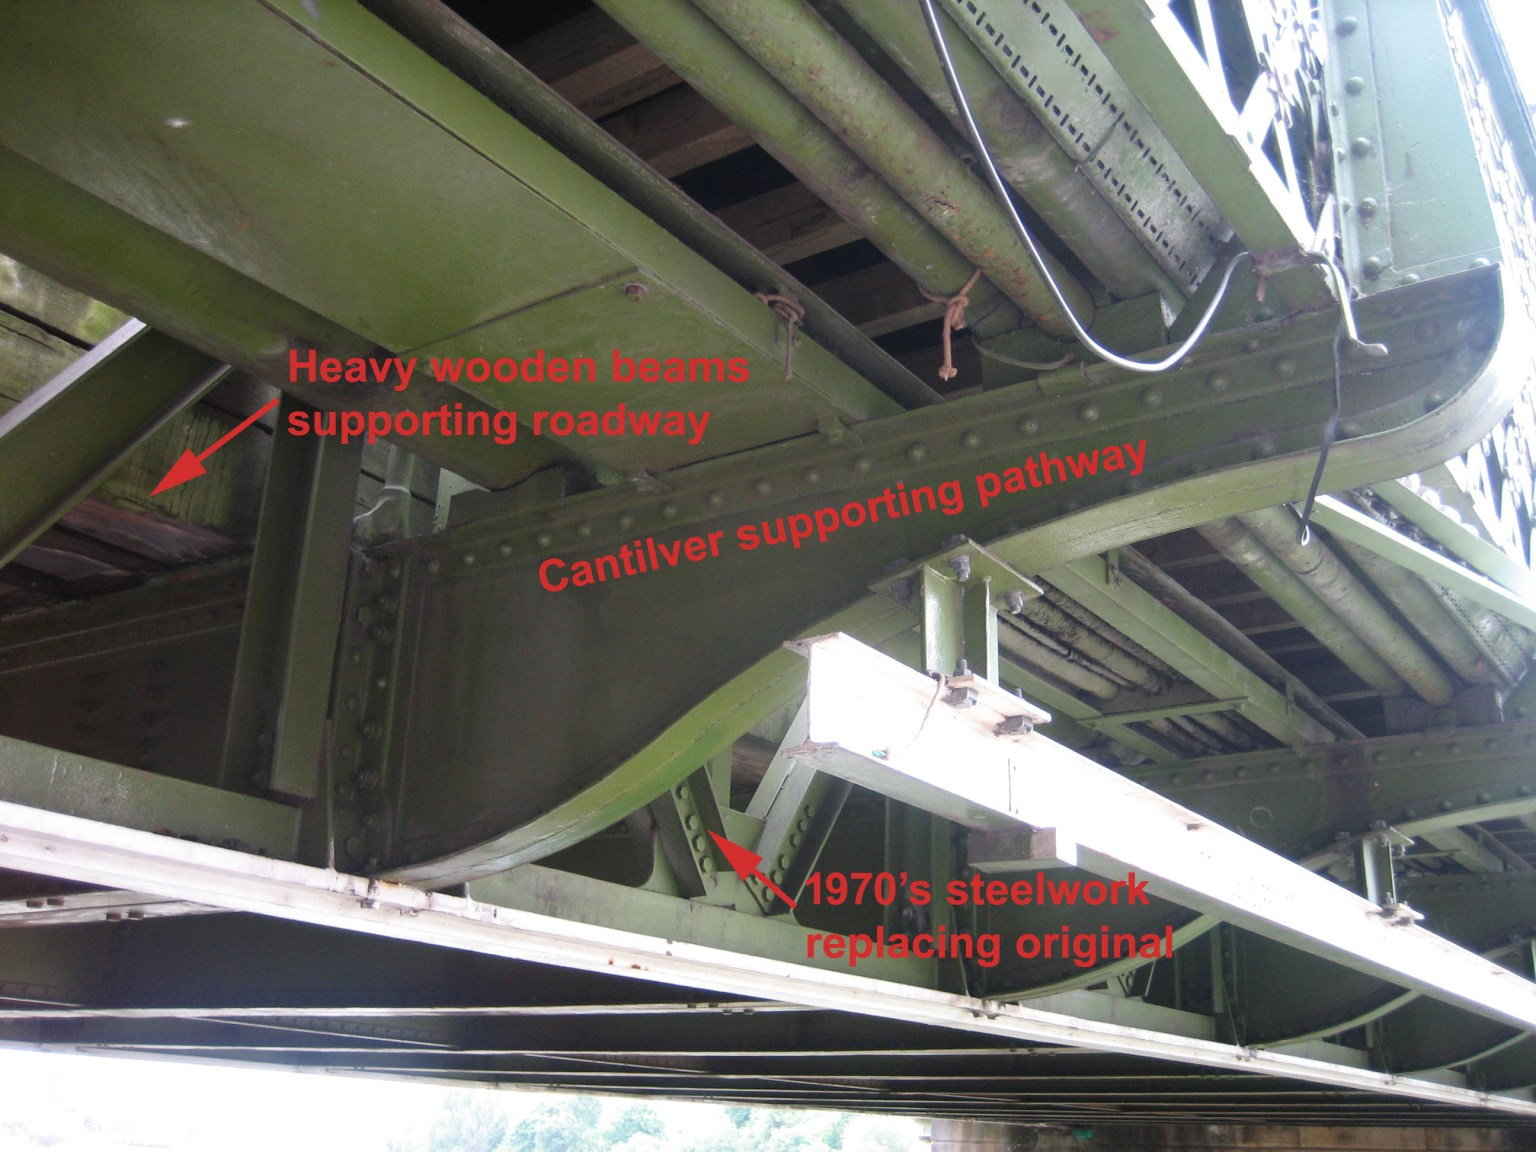 Hammersmith Bridge underside in May 2020